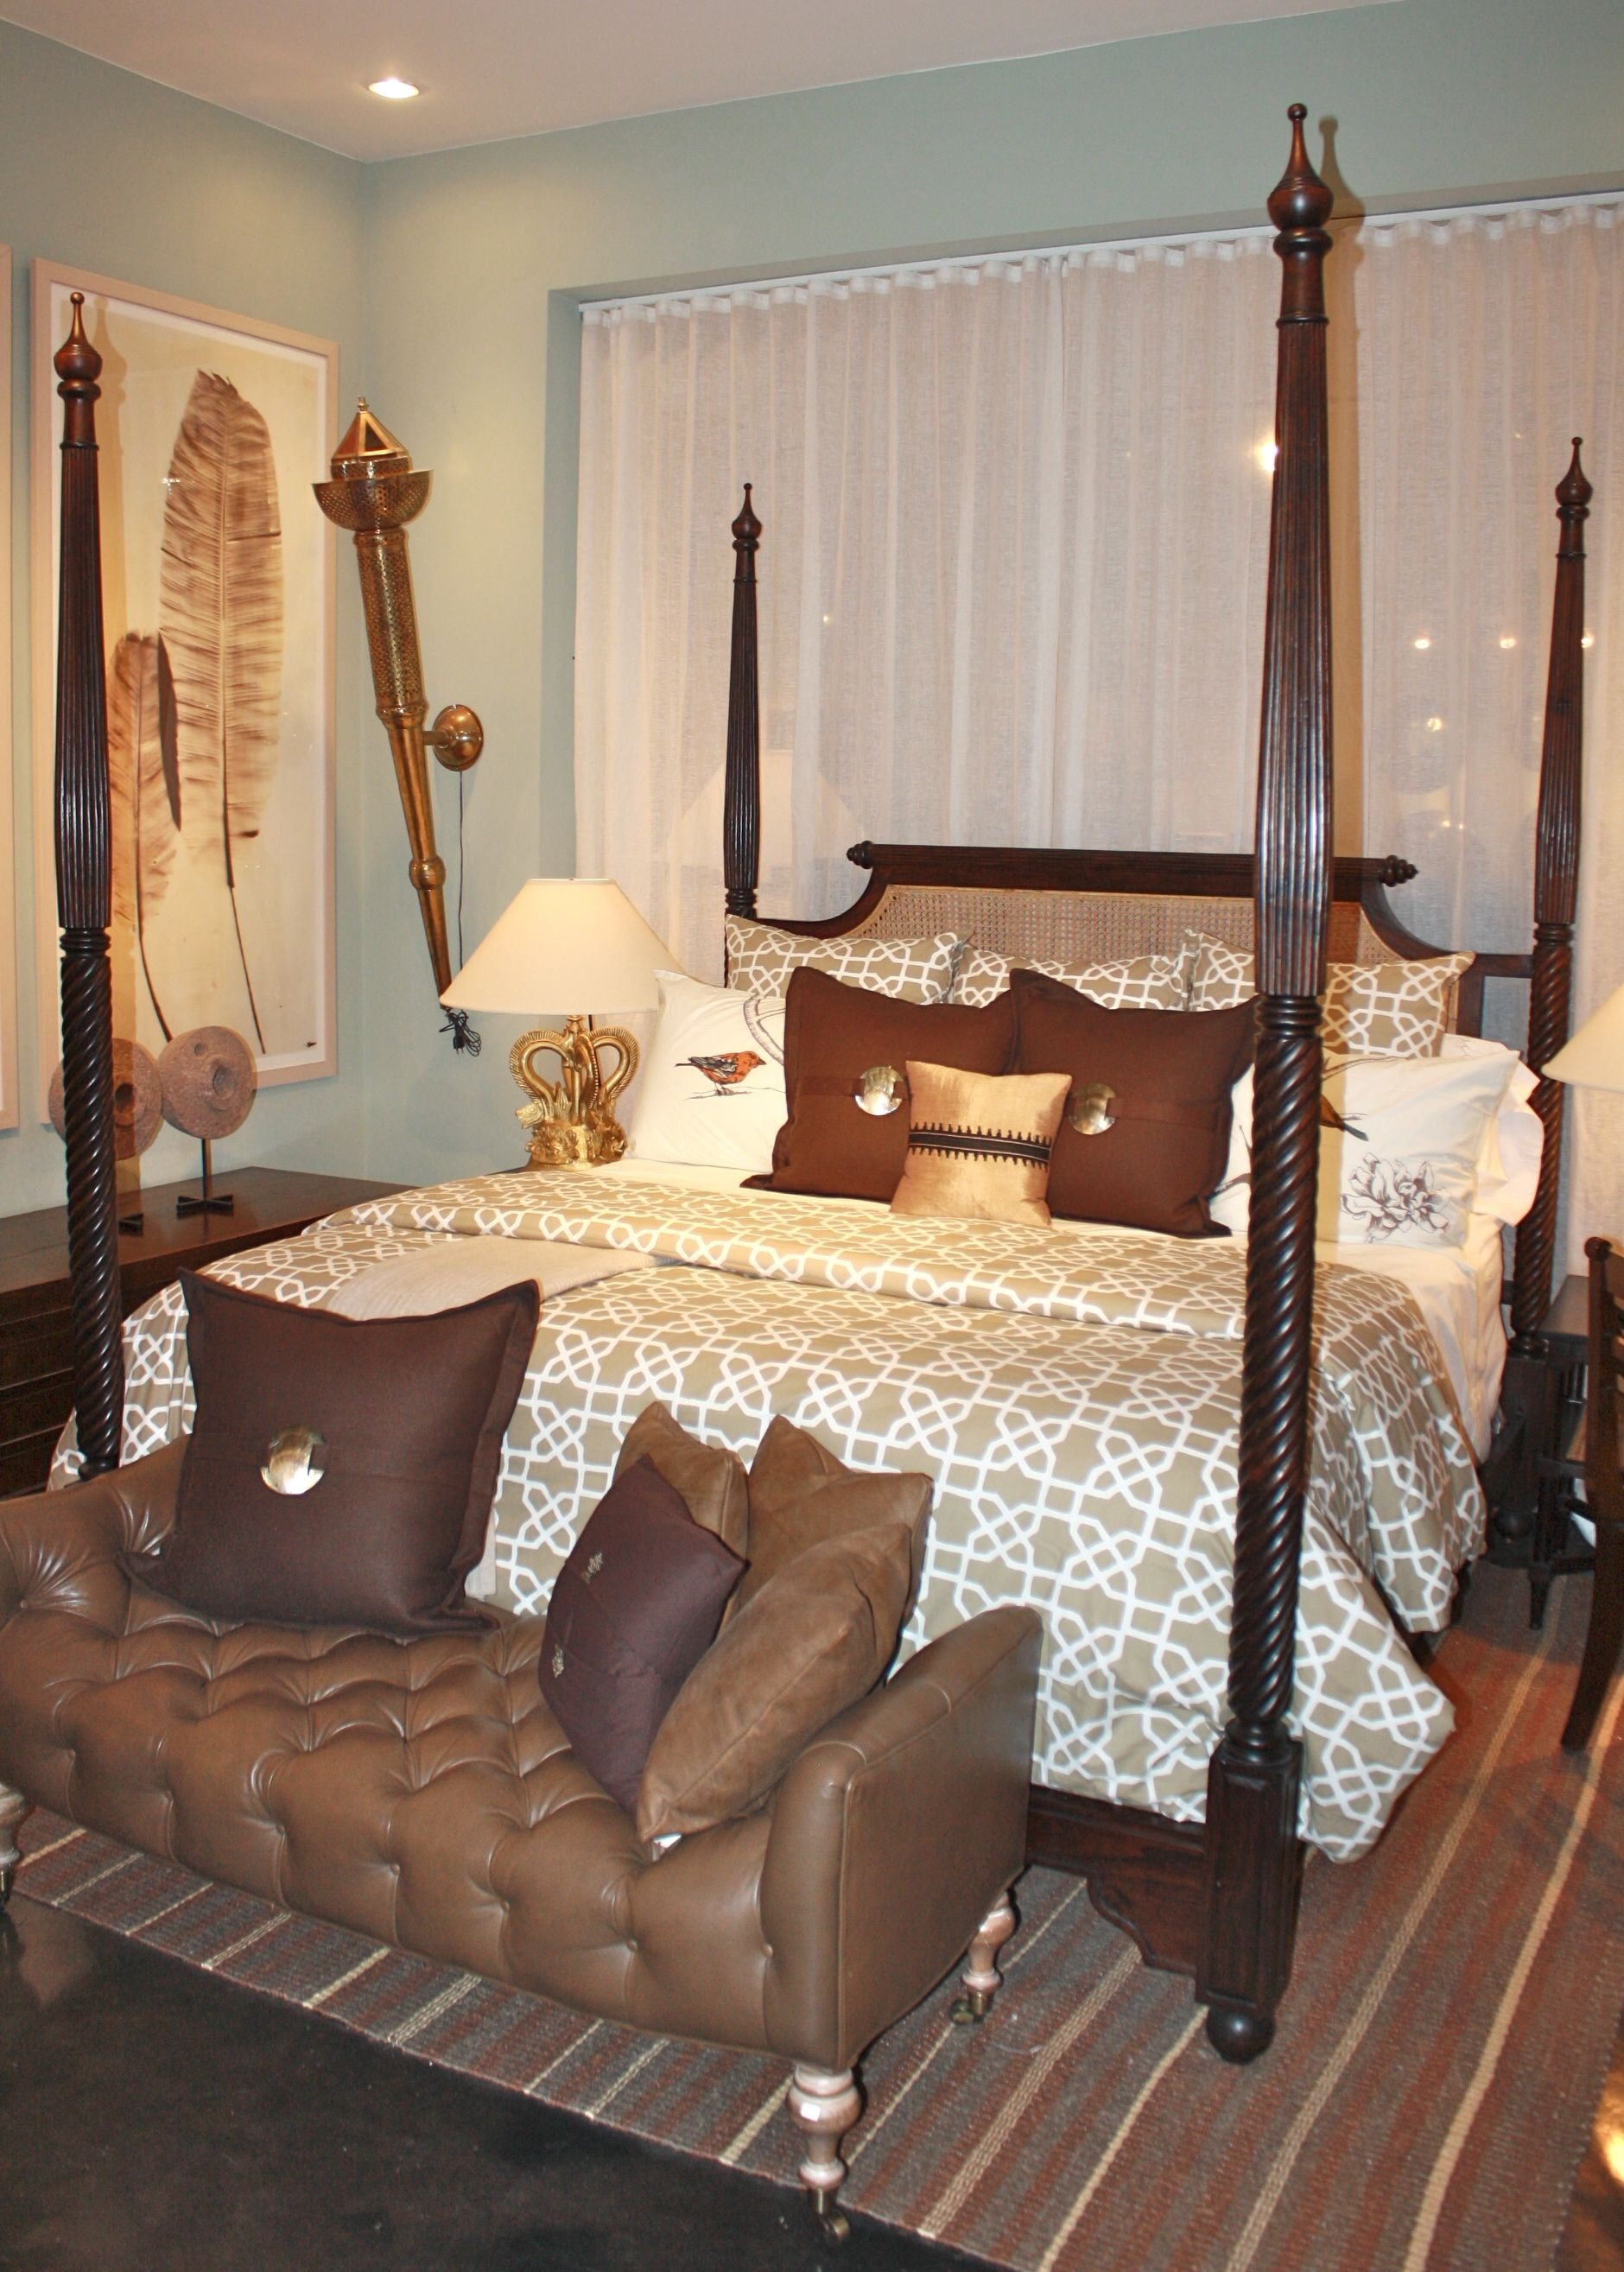 Mother Of Pearl >> British Colonial 4 Poster Bed - King Size - Indian Bed